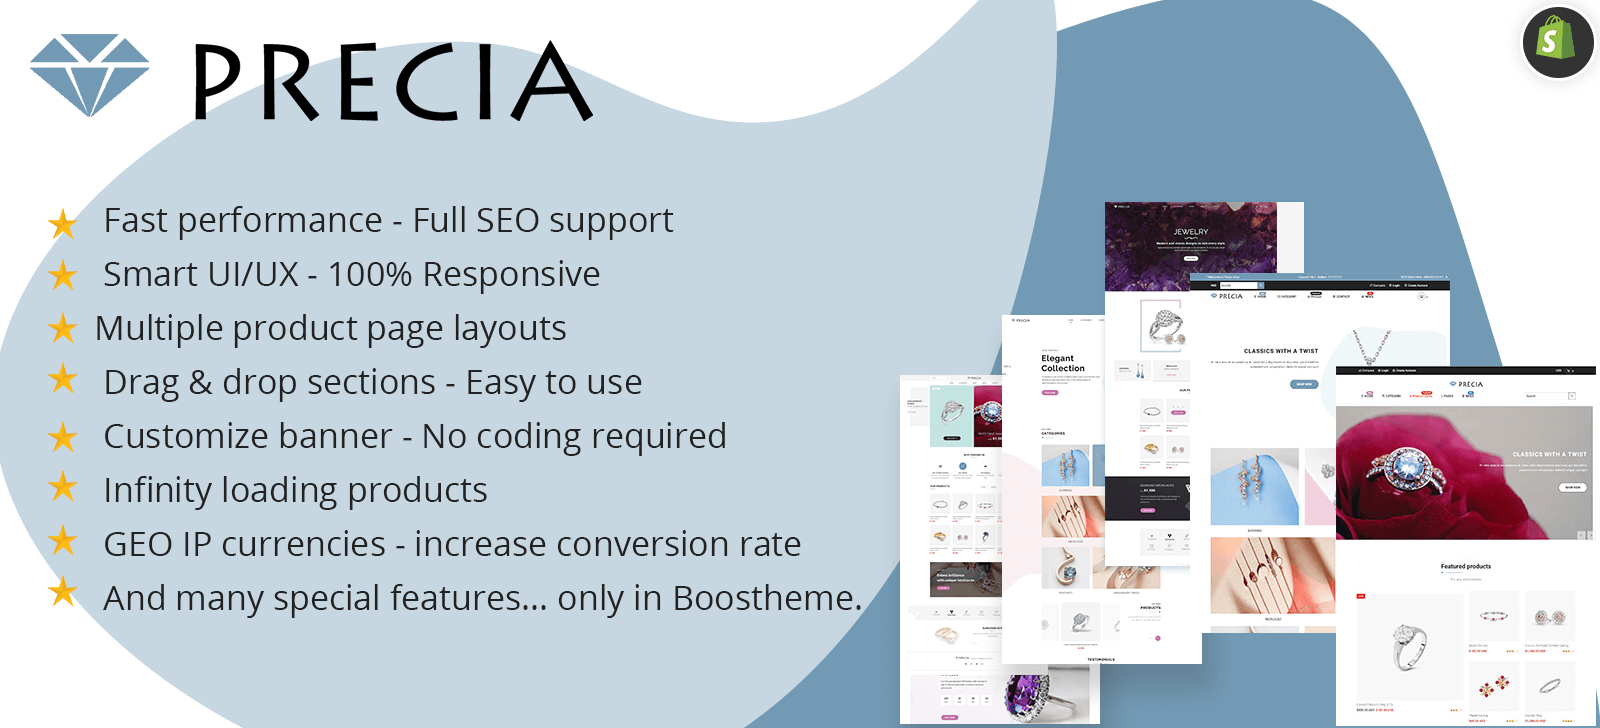 Precia - Responsive Shopify Sections Theme - Google Pagespeed 99/100 -  Cross-Sells - GeoIP Currency